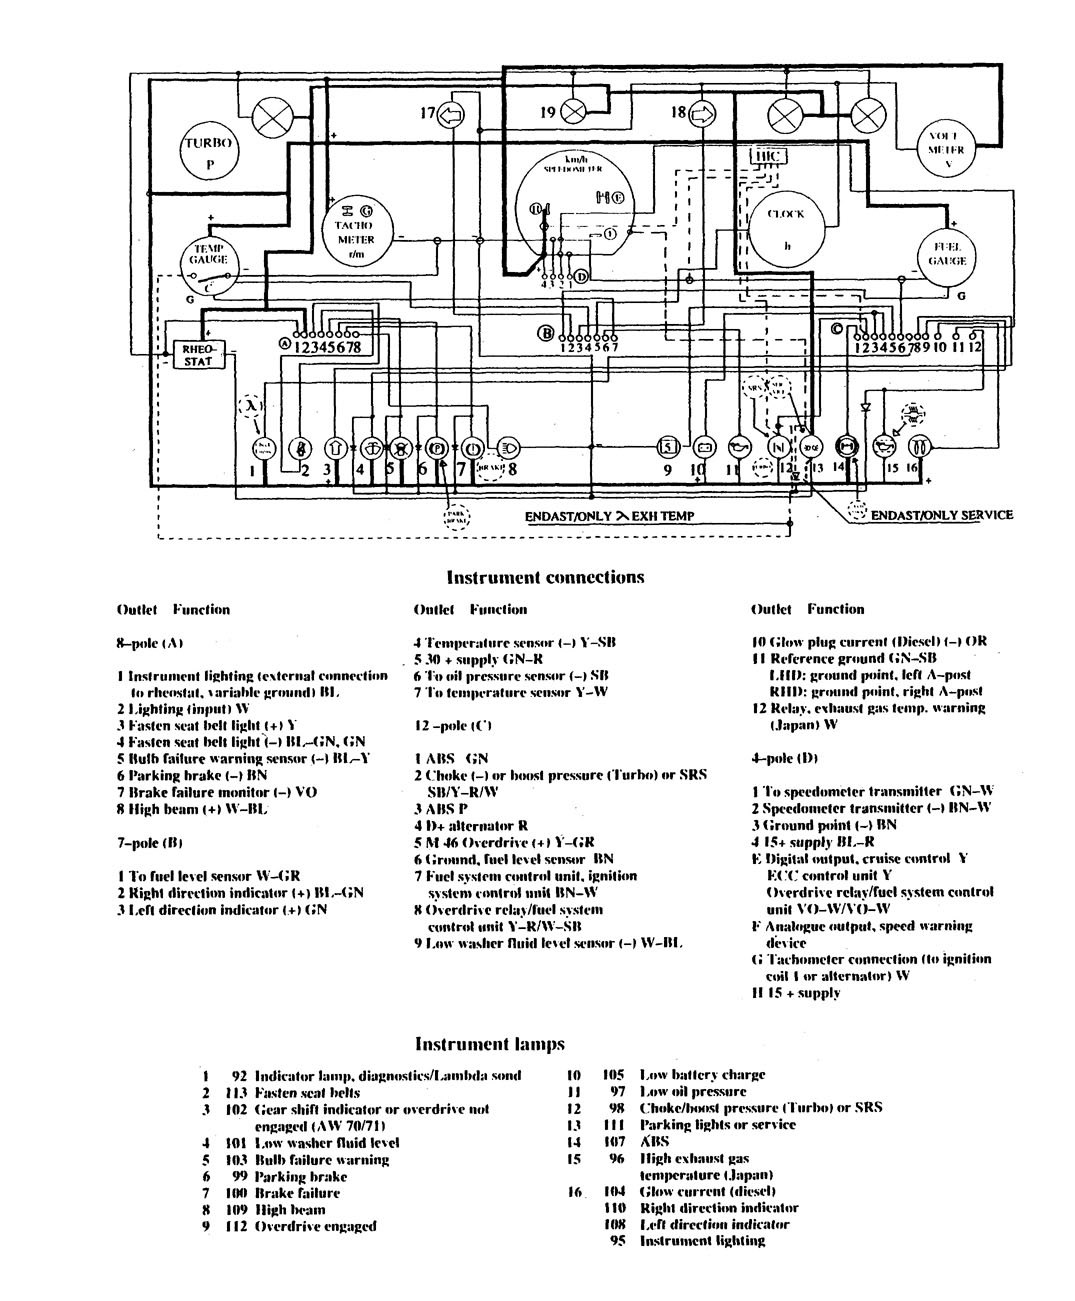 Wiring Diagram For 1990 Volvo 740 : Volvo  wiring diagrams instrumentation